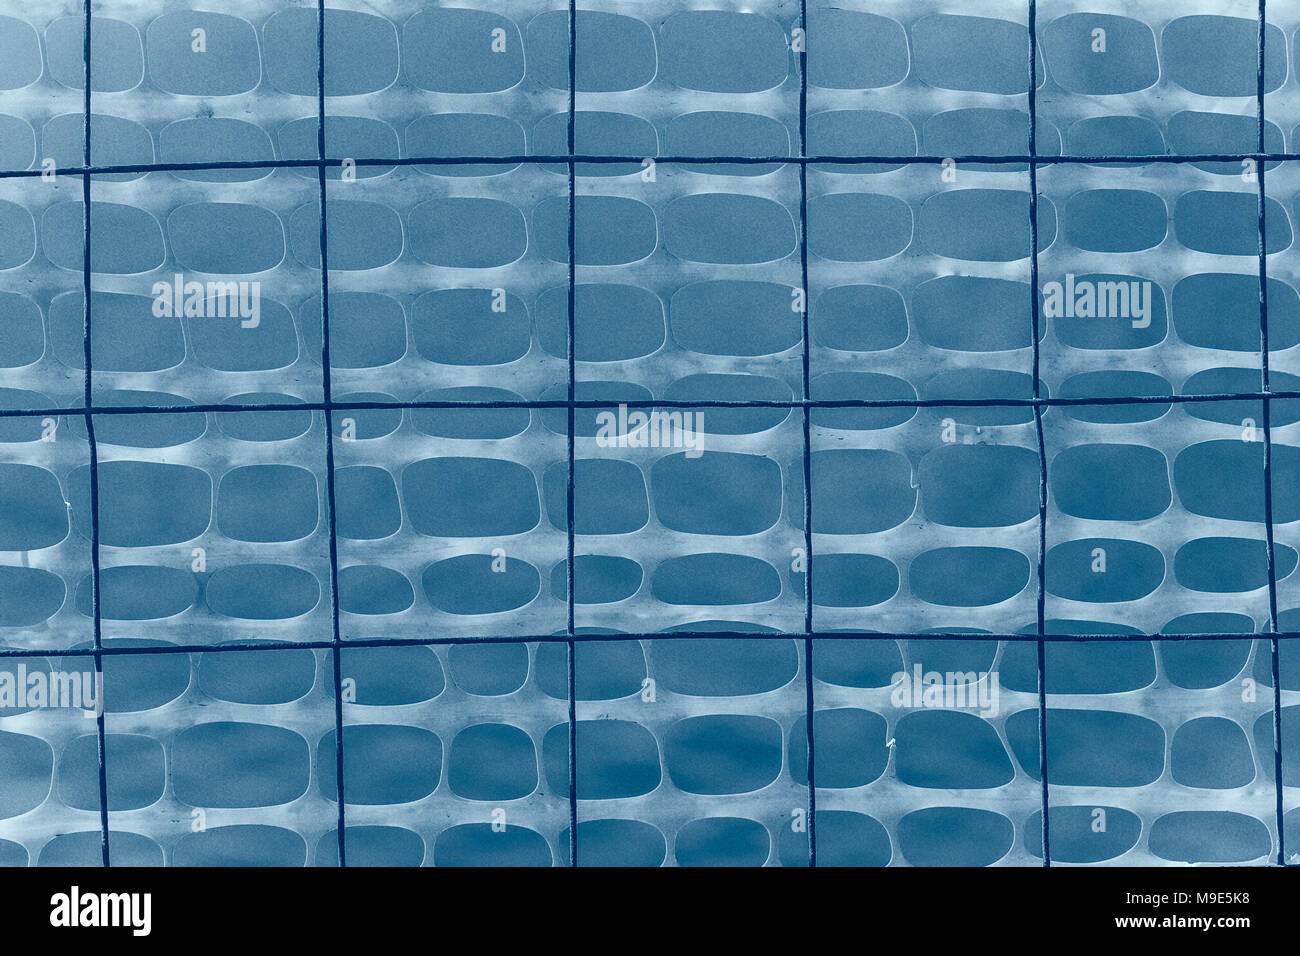 Dark Blue Metal Mesh Texture Stock Photos & Dark Blue Metal Mesh ...